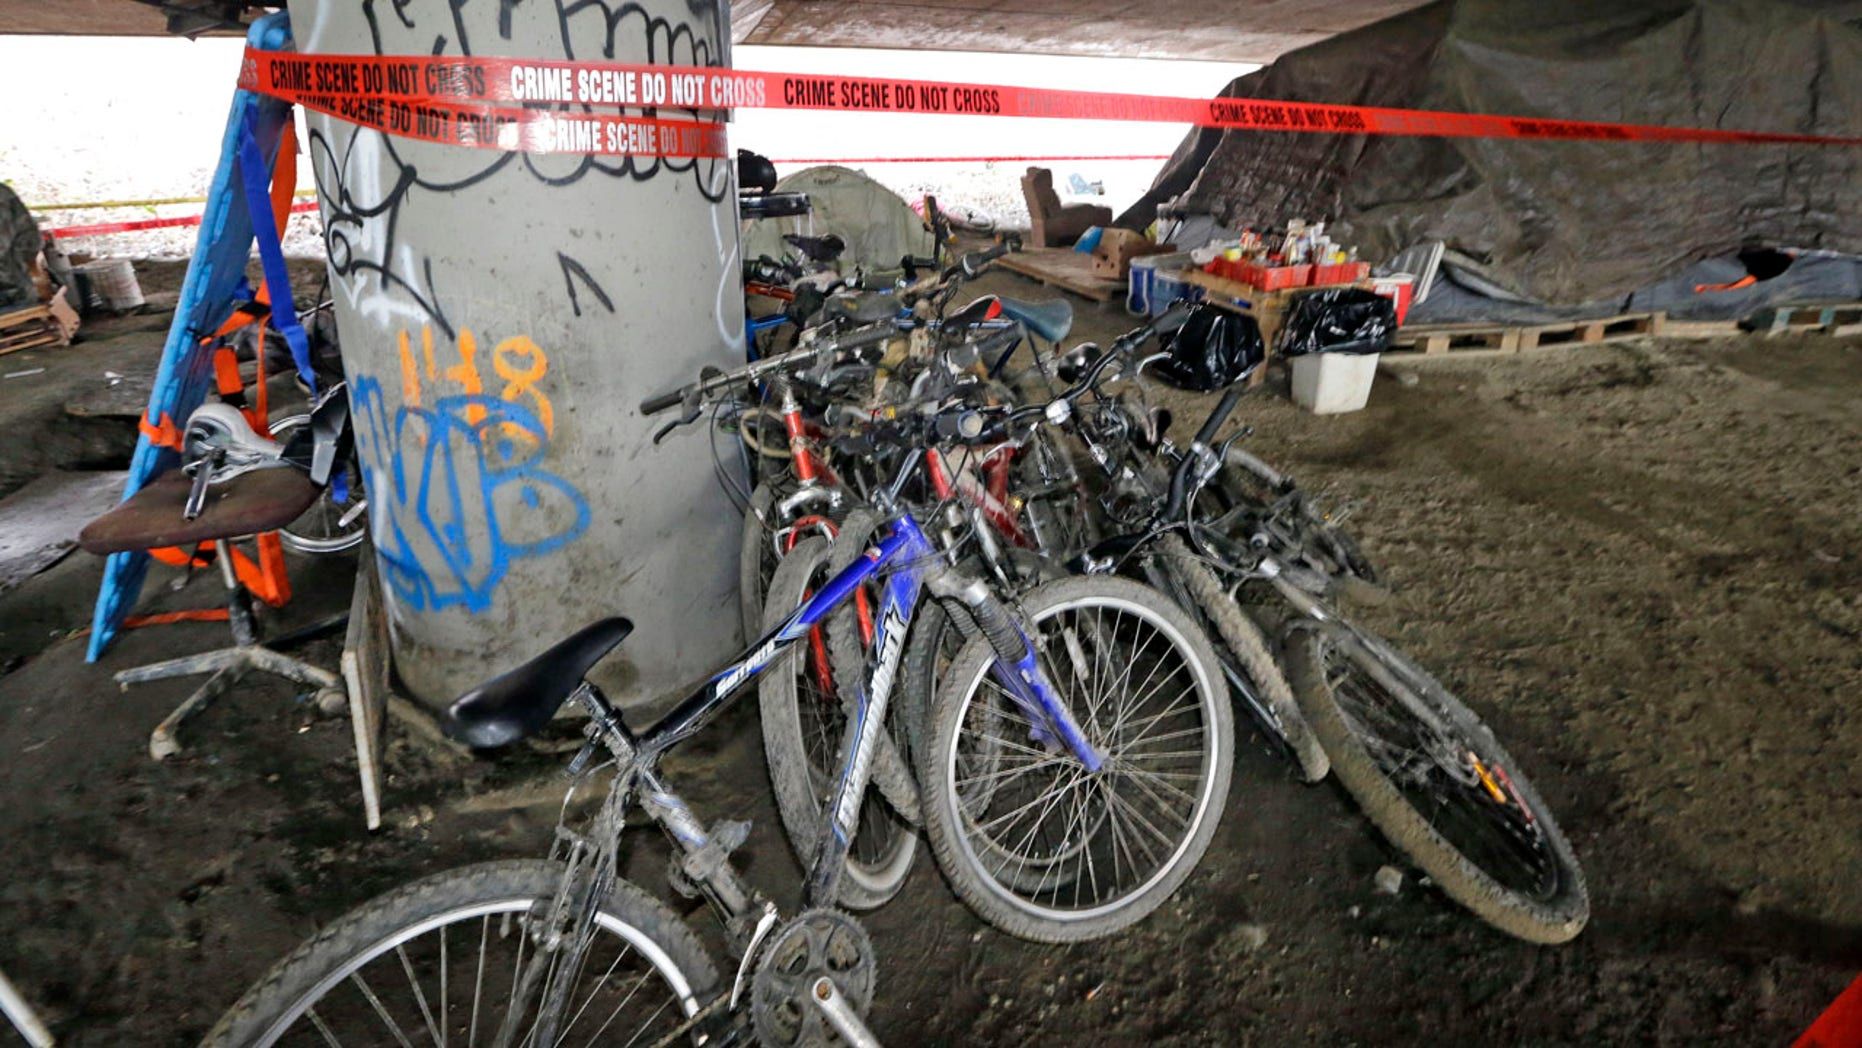 Jan. 27, 2016: Bicycles remain stacked against a support post for Interstate 5 above as crime scene tape surrounds the site of a shooting the night before at a homeless encampment in Seattle. (AP Photo/Elaine Thompson)